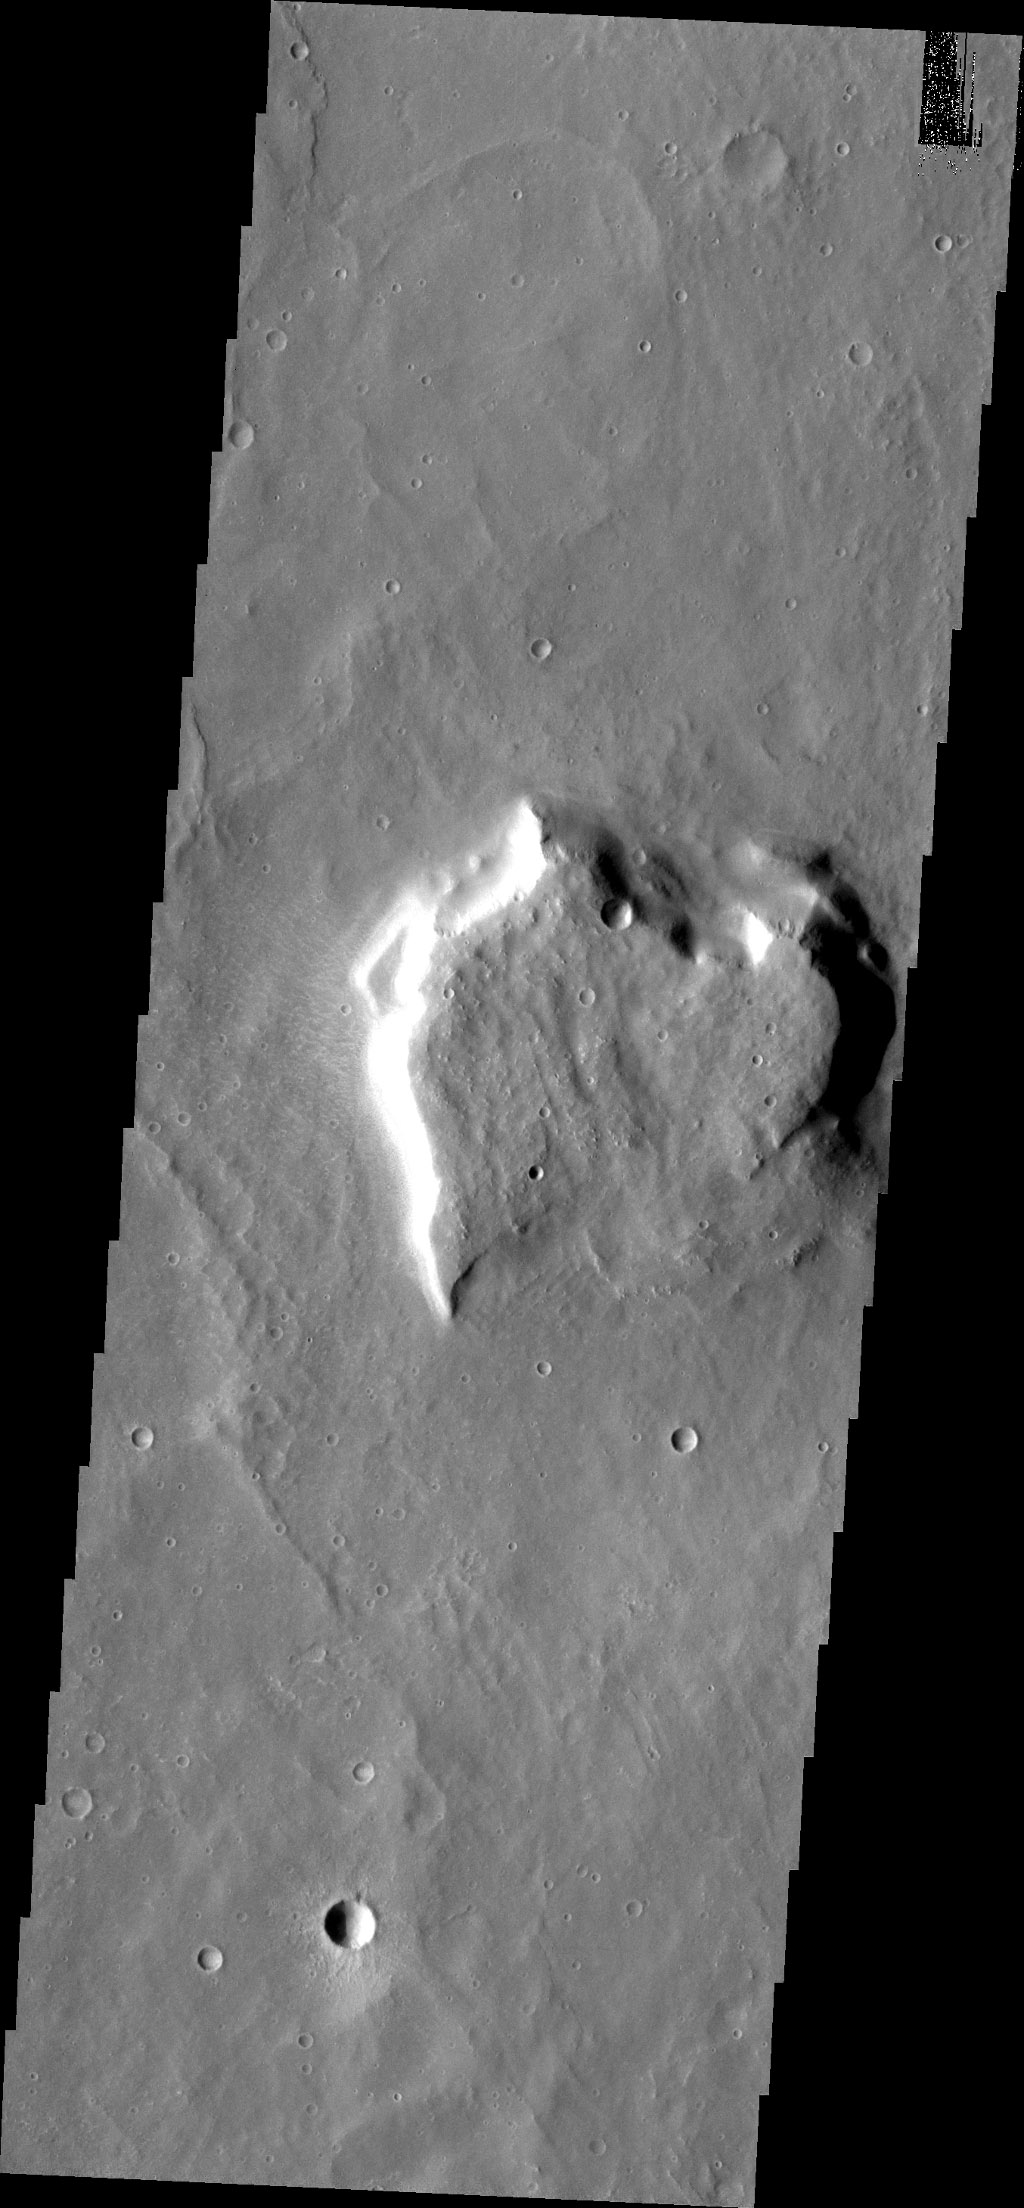 Do you see what I see in this image from NASA's Mars Odyssey spacecraft? Though not as pretty as our previous heart-shaped mesa, here's another one.